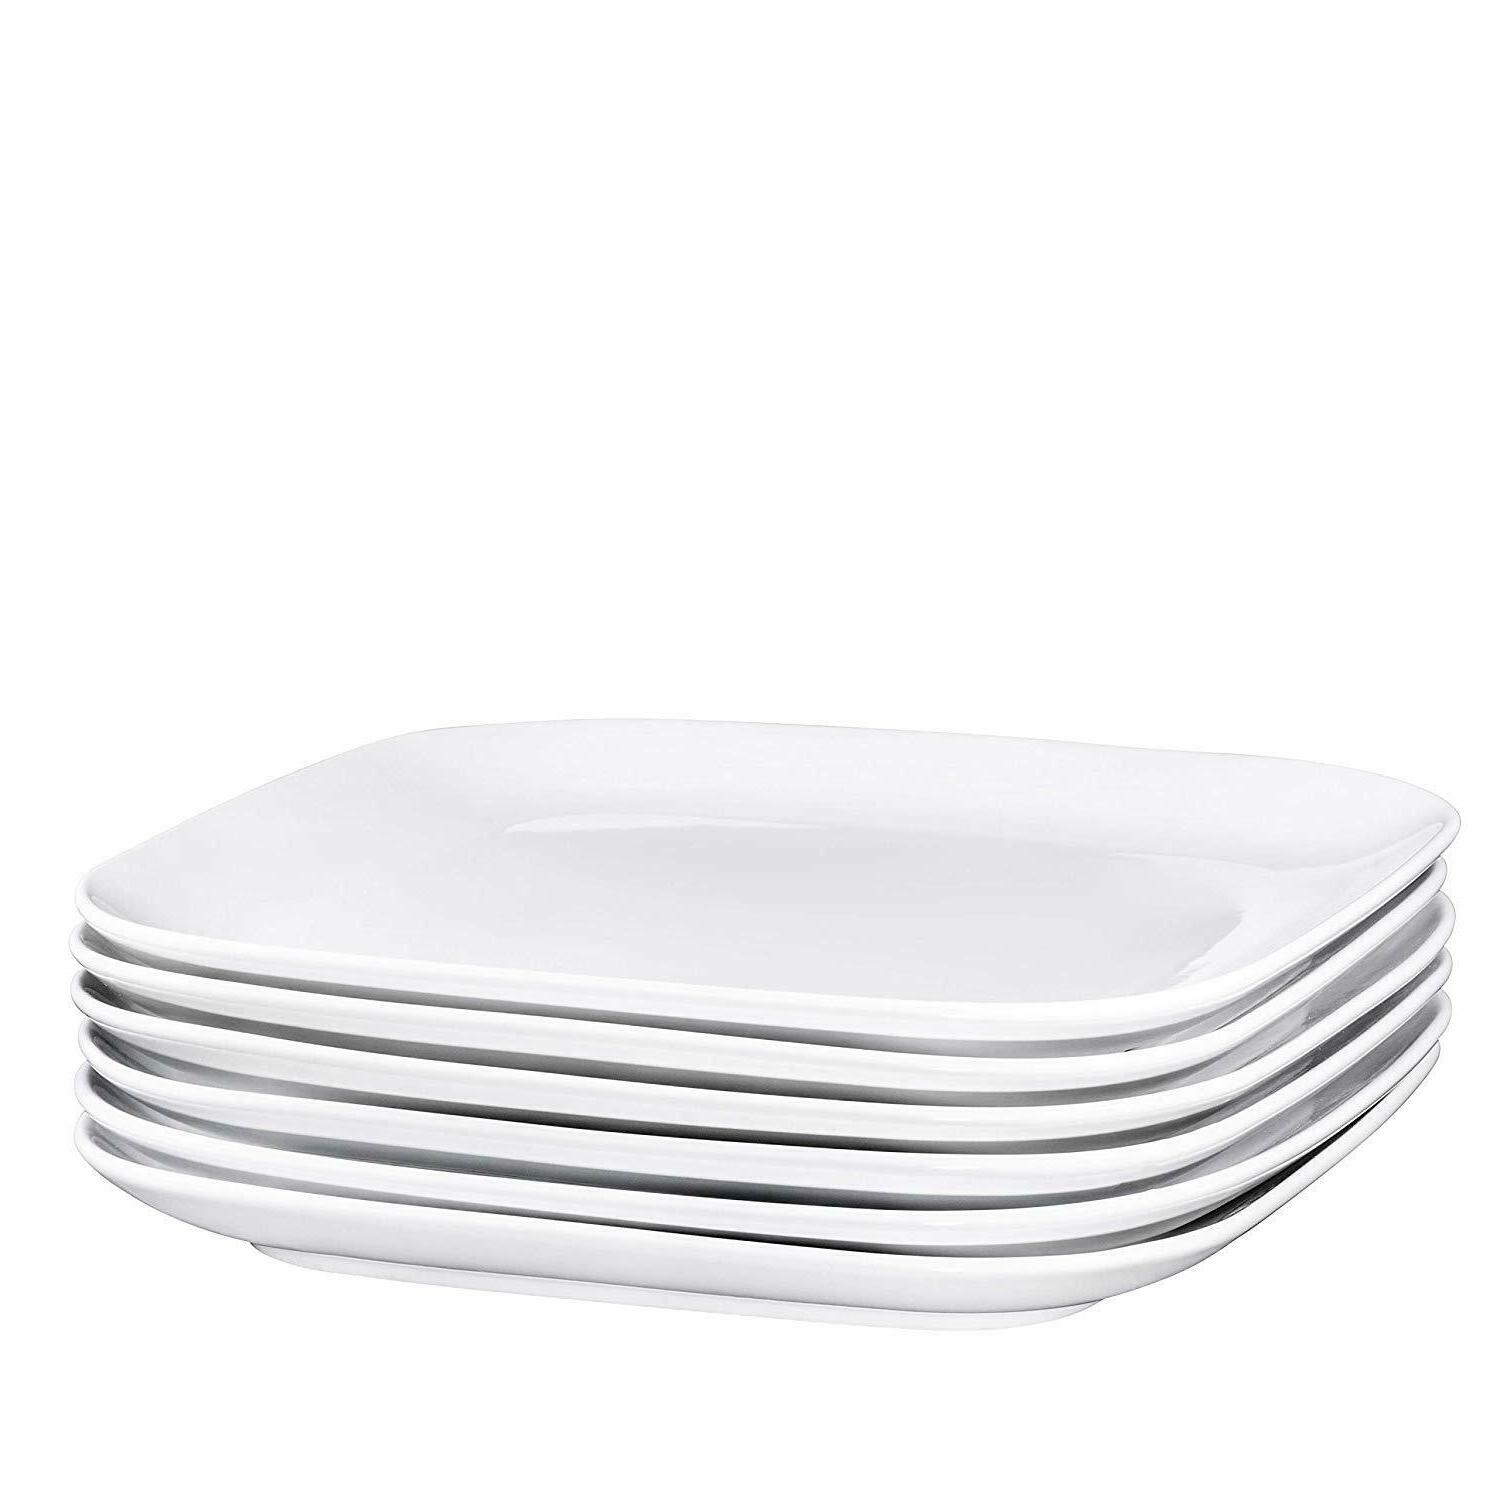 Bruntmor Plates Set Restaurant Dishes Inch